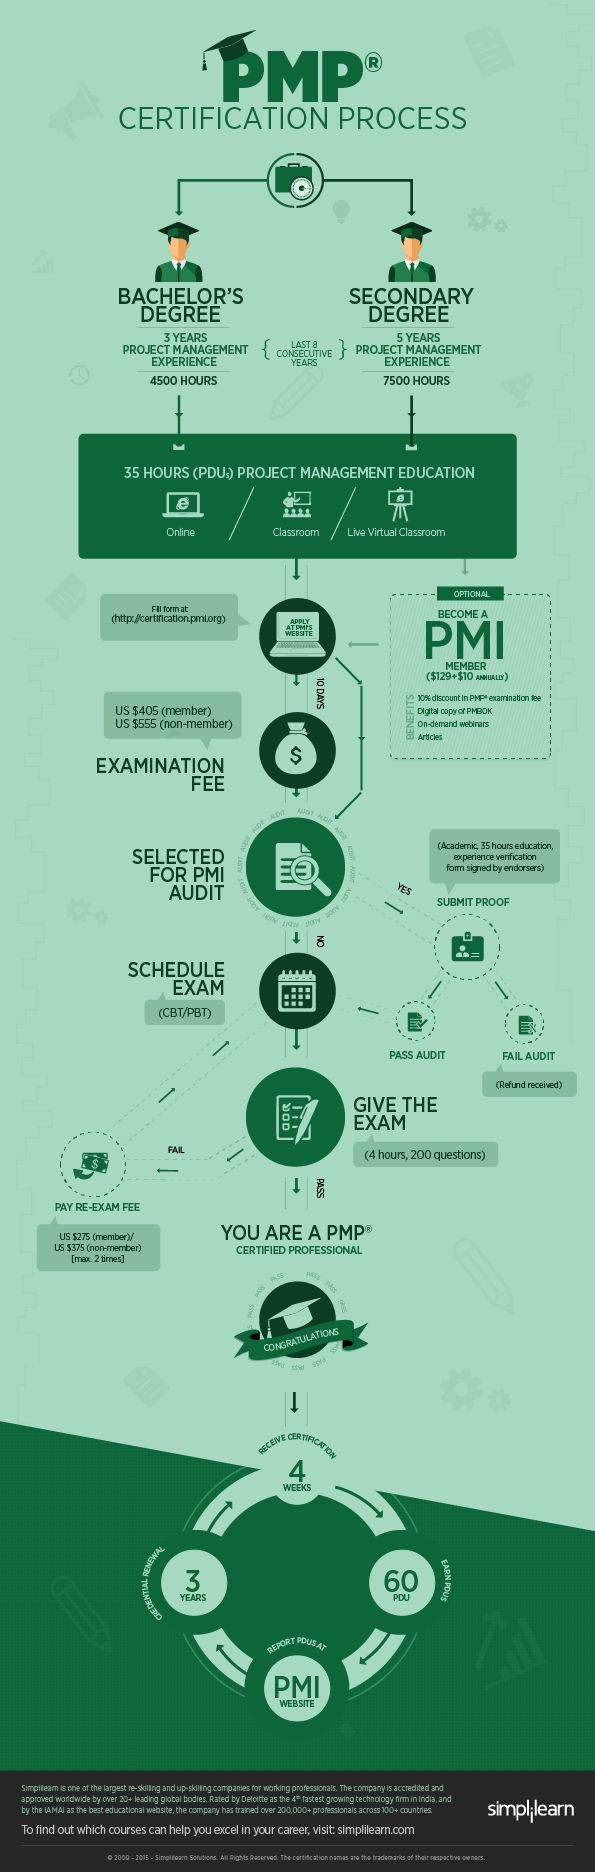 best ideas about project management certification step by step guide to crack pmp certification process infographic elearninginfographics